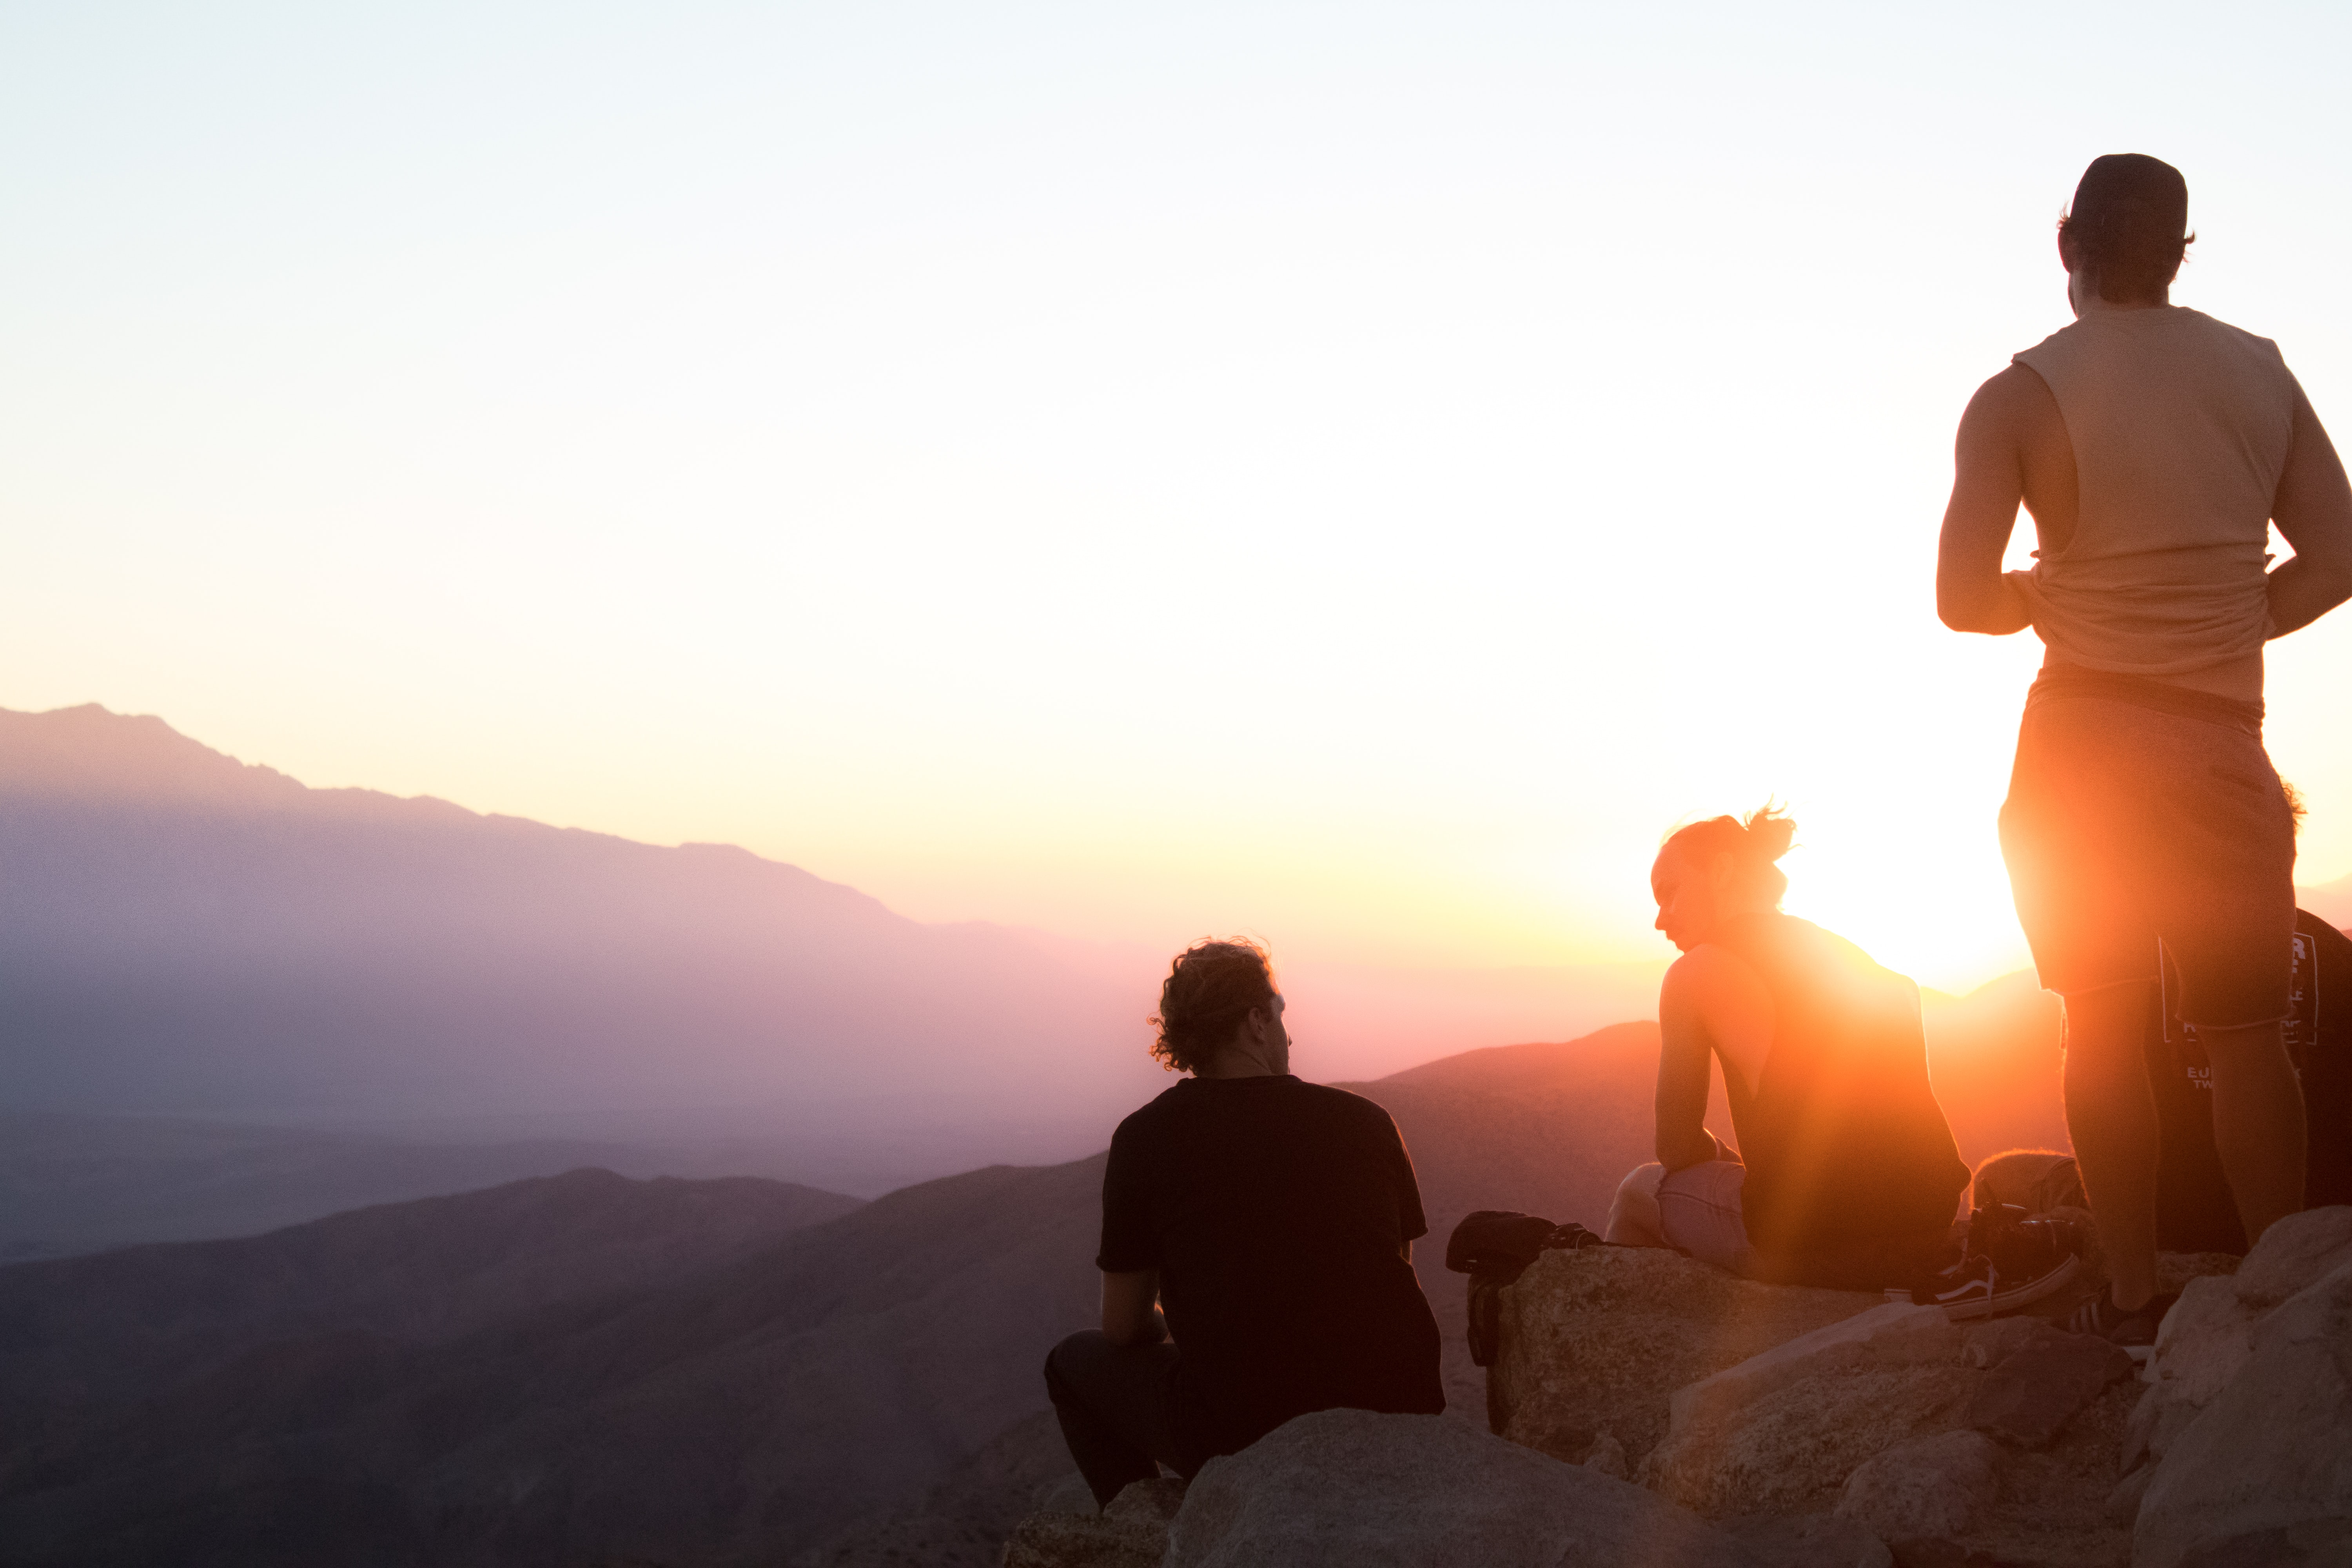 Group hikers atop a rocky cliff taking a break by watching the sunset at Joshua Tree